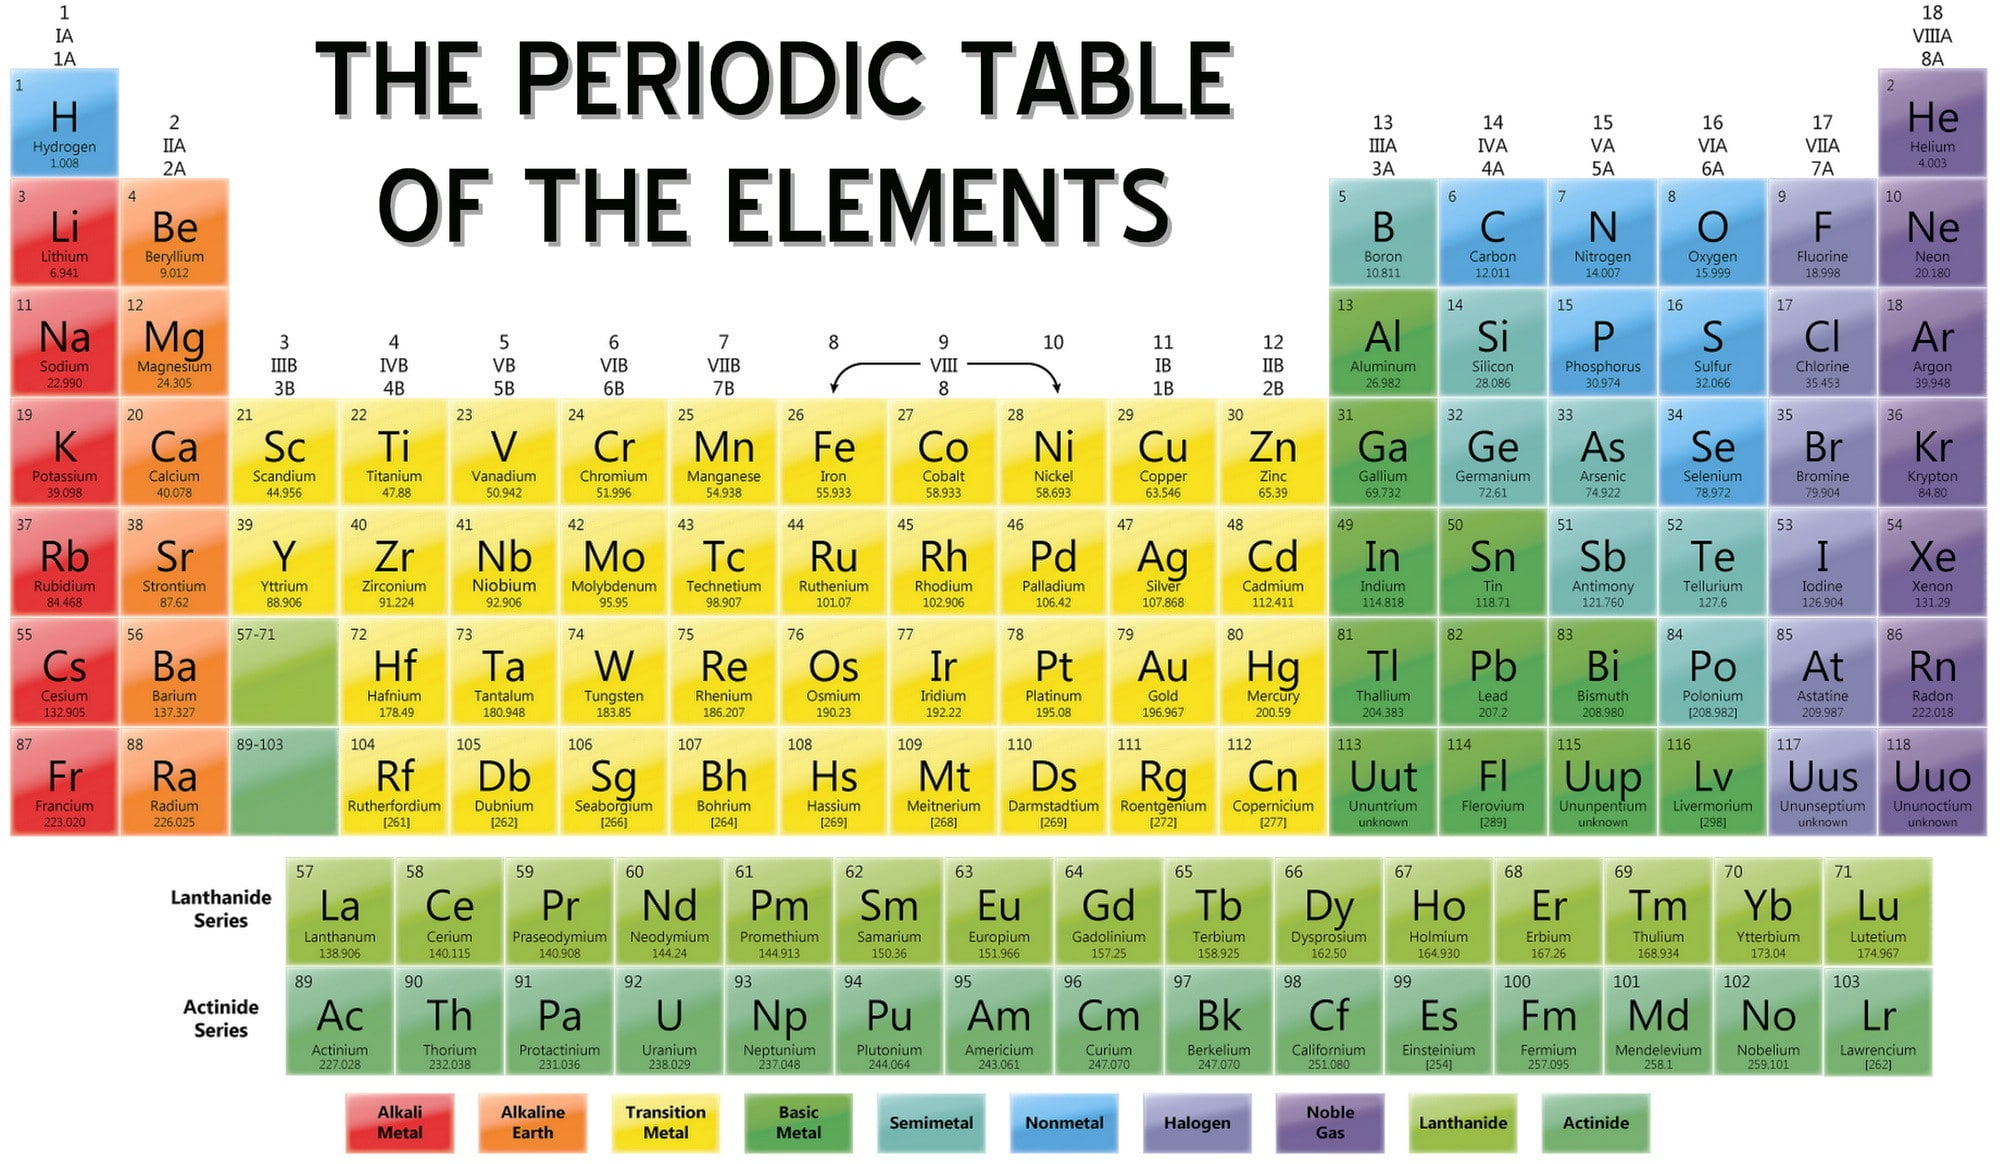 Periodic table of elements thinglink divgroup 18 noble gasesdivdivgeneral electron configuration np6divdivnoble gas characteristicsdivdiv1 stable elements due to full gamestrikefo Images